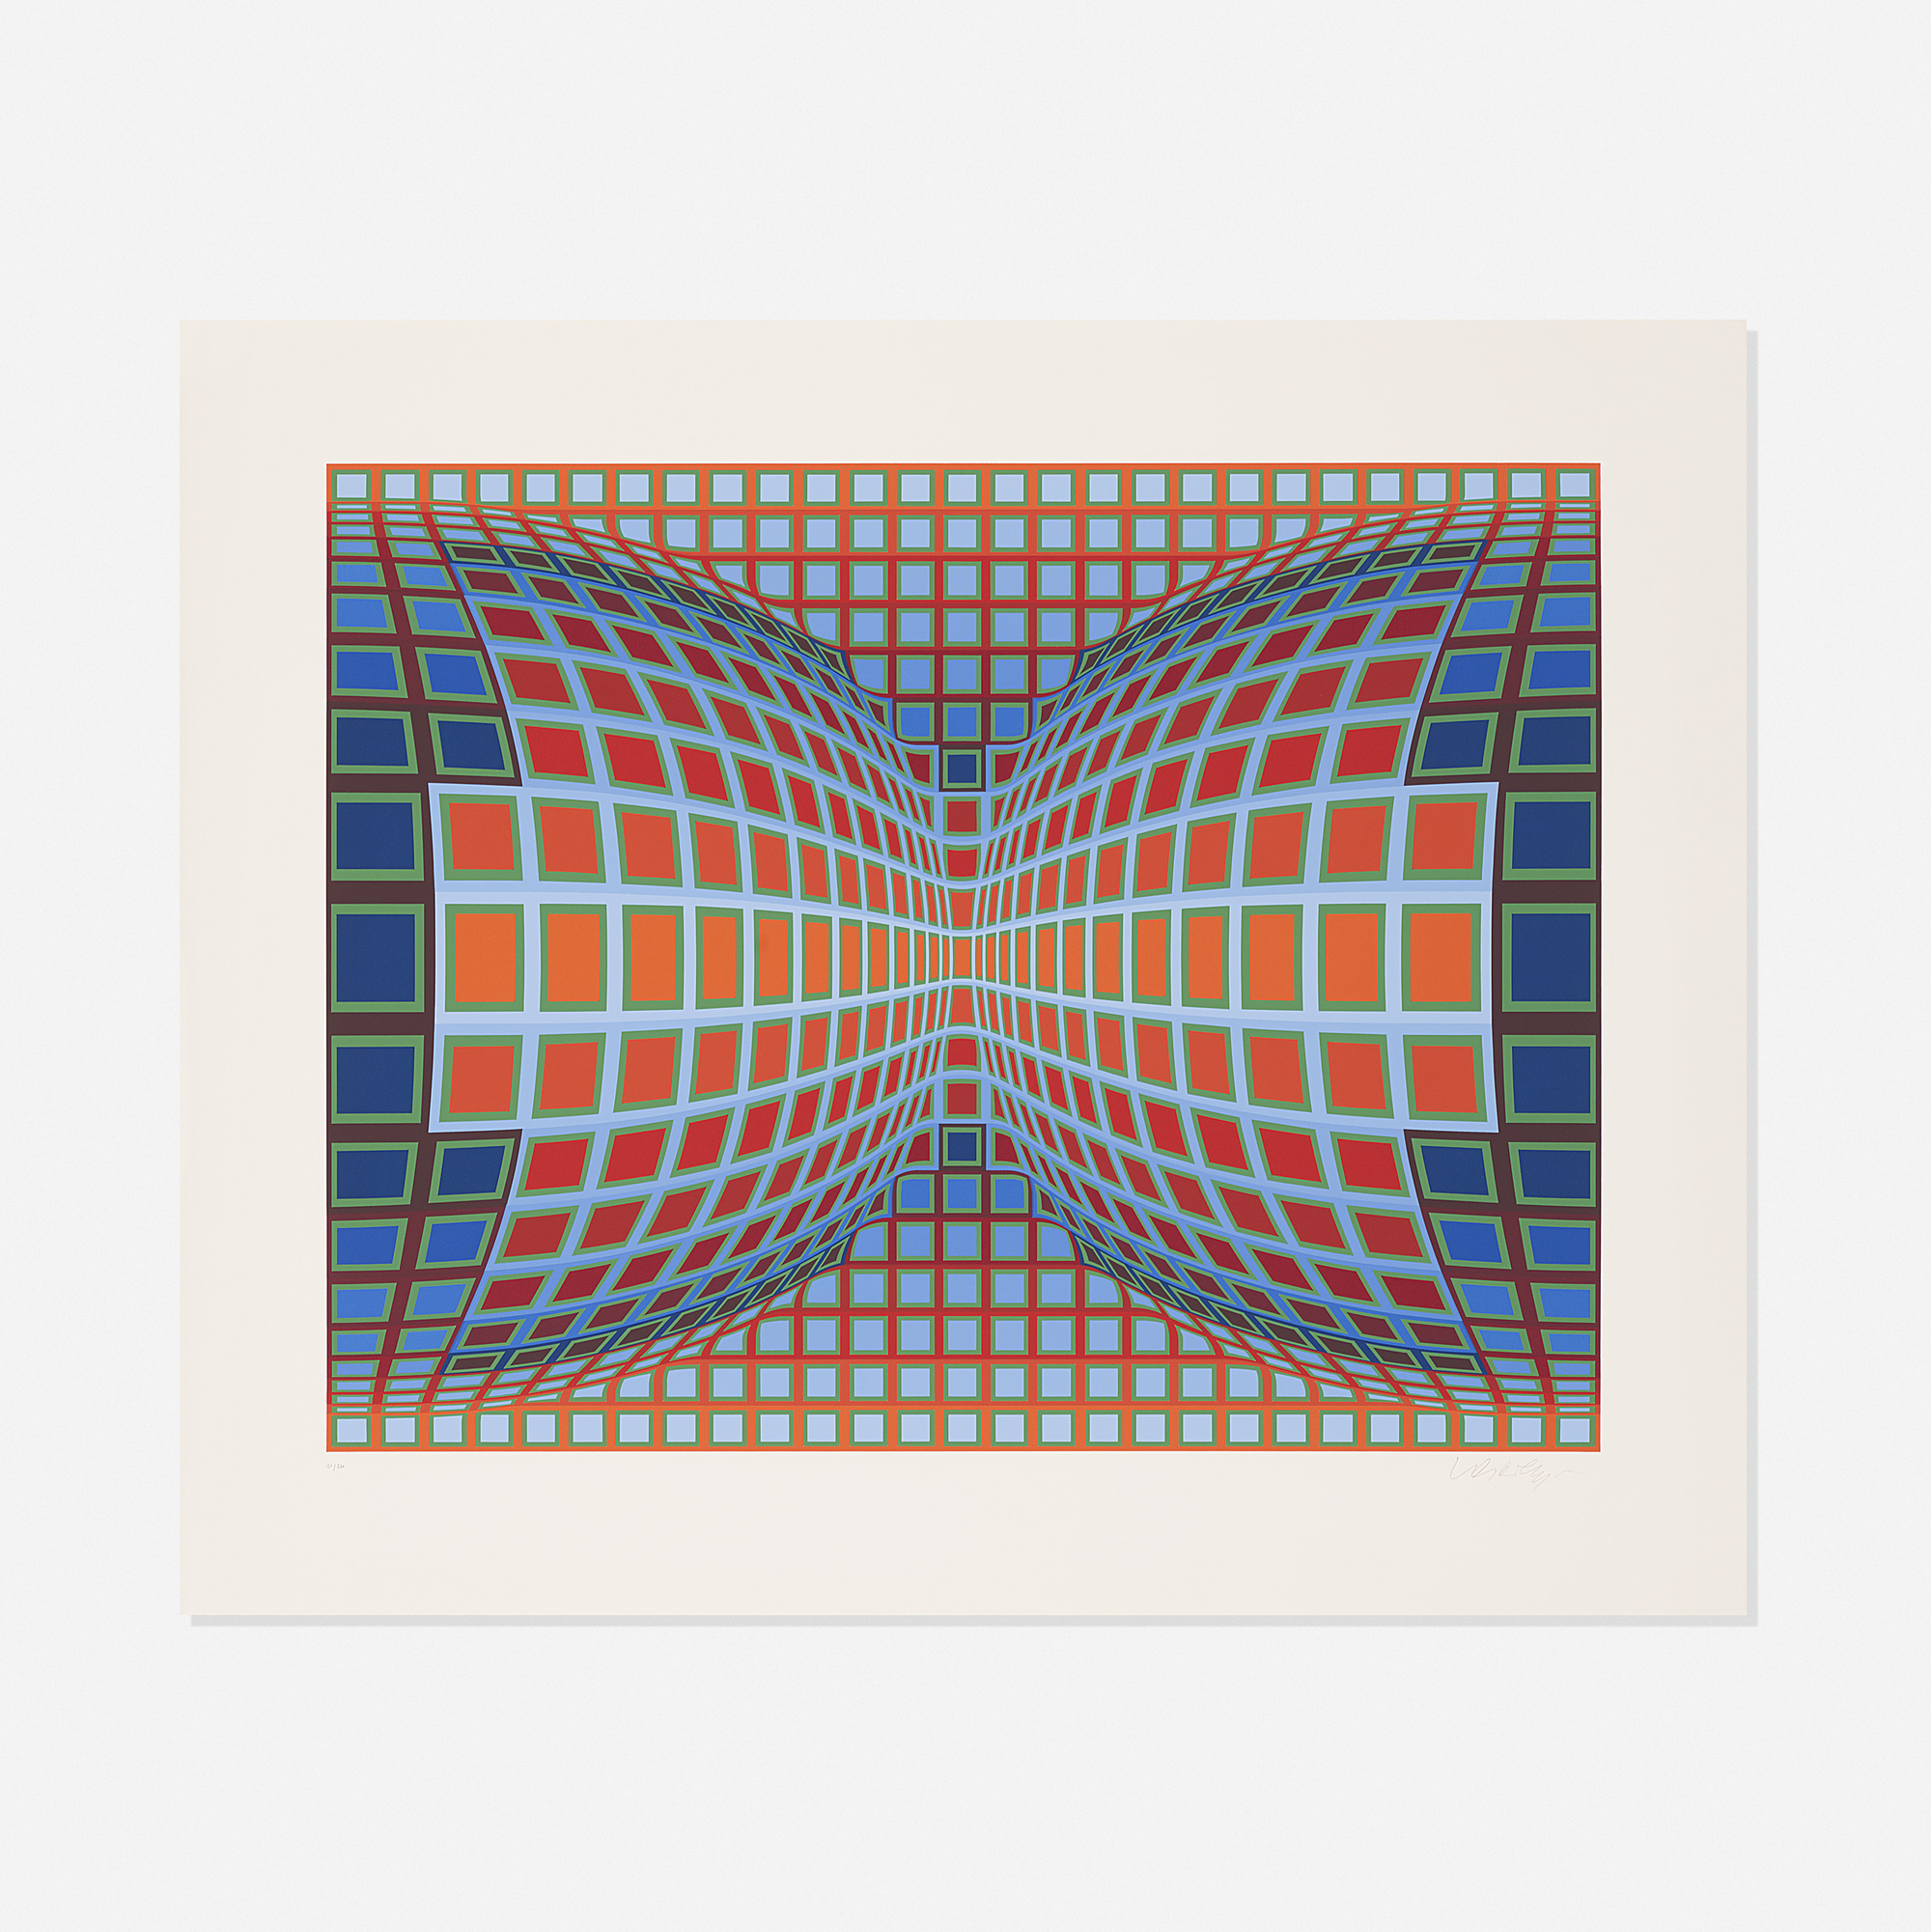 104: Victor Vasarely / Papillon (1 of 1)